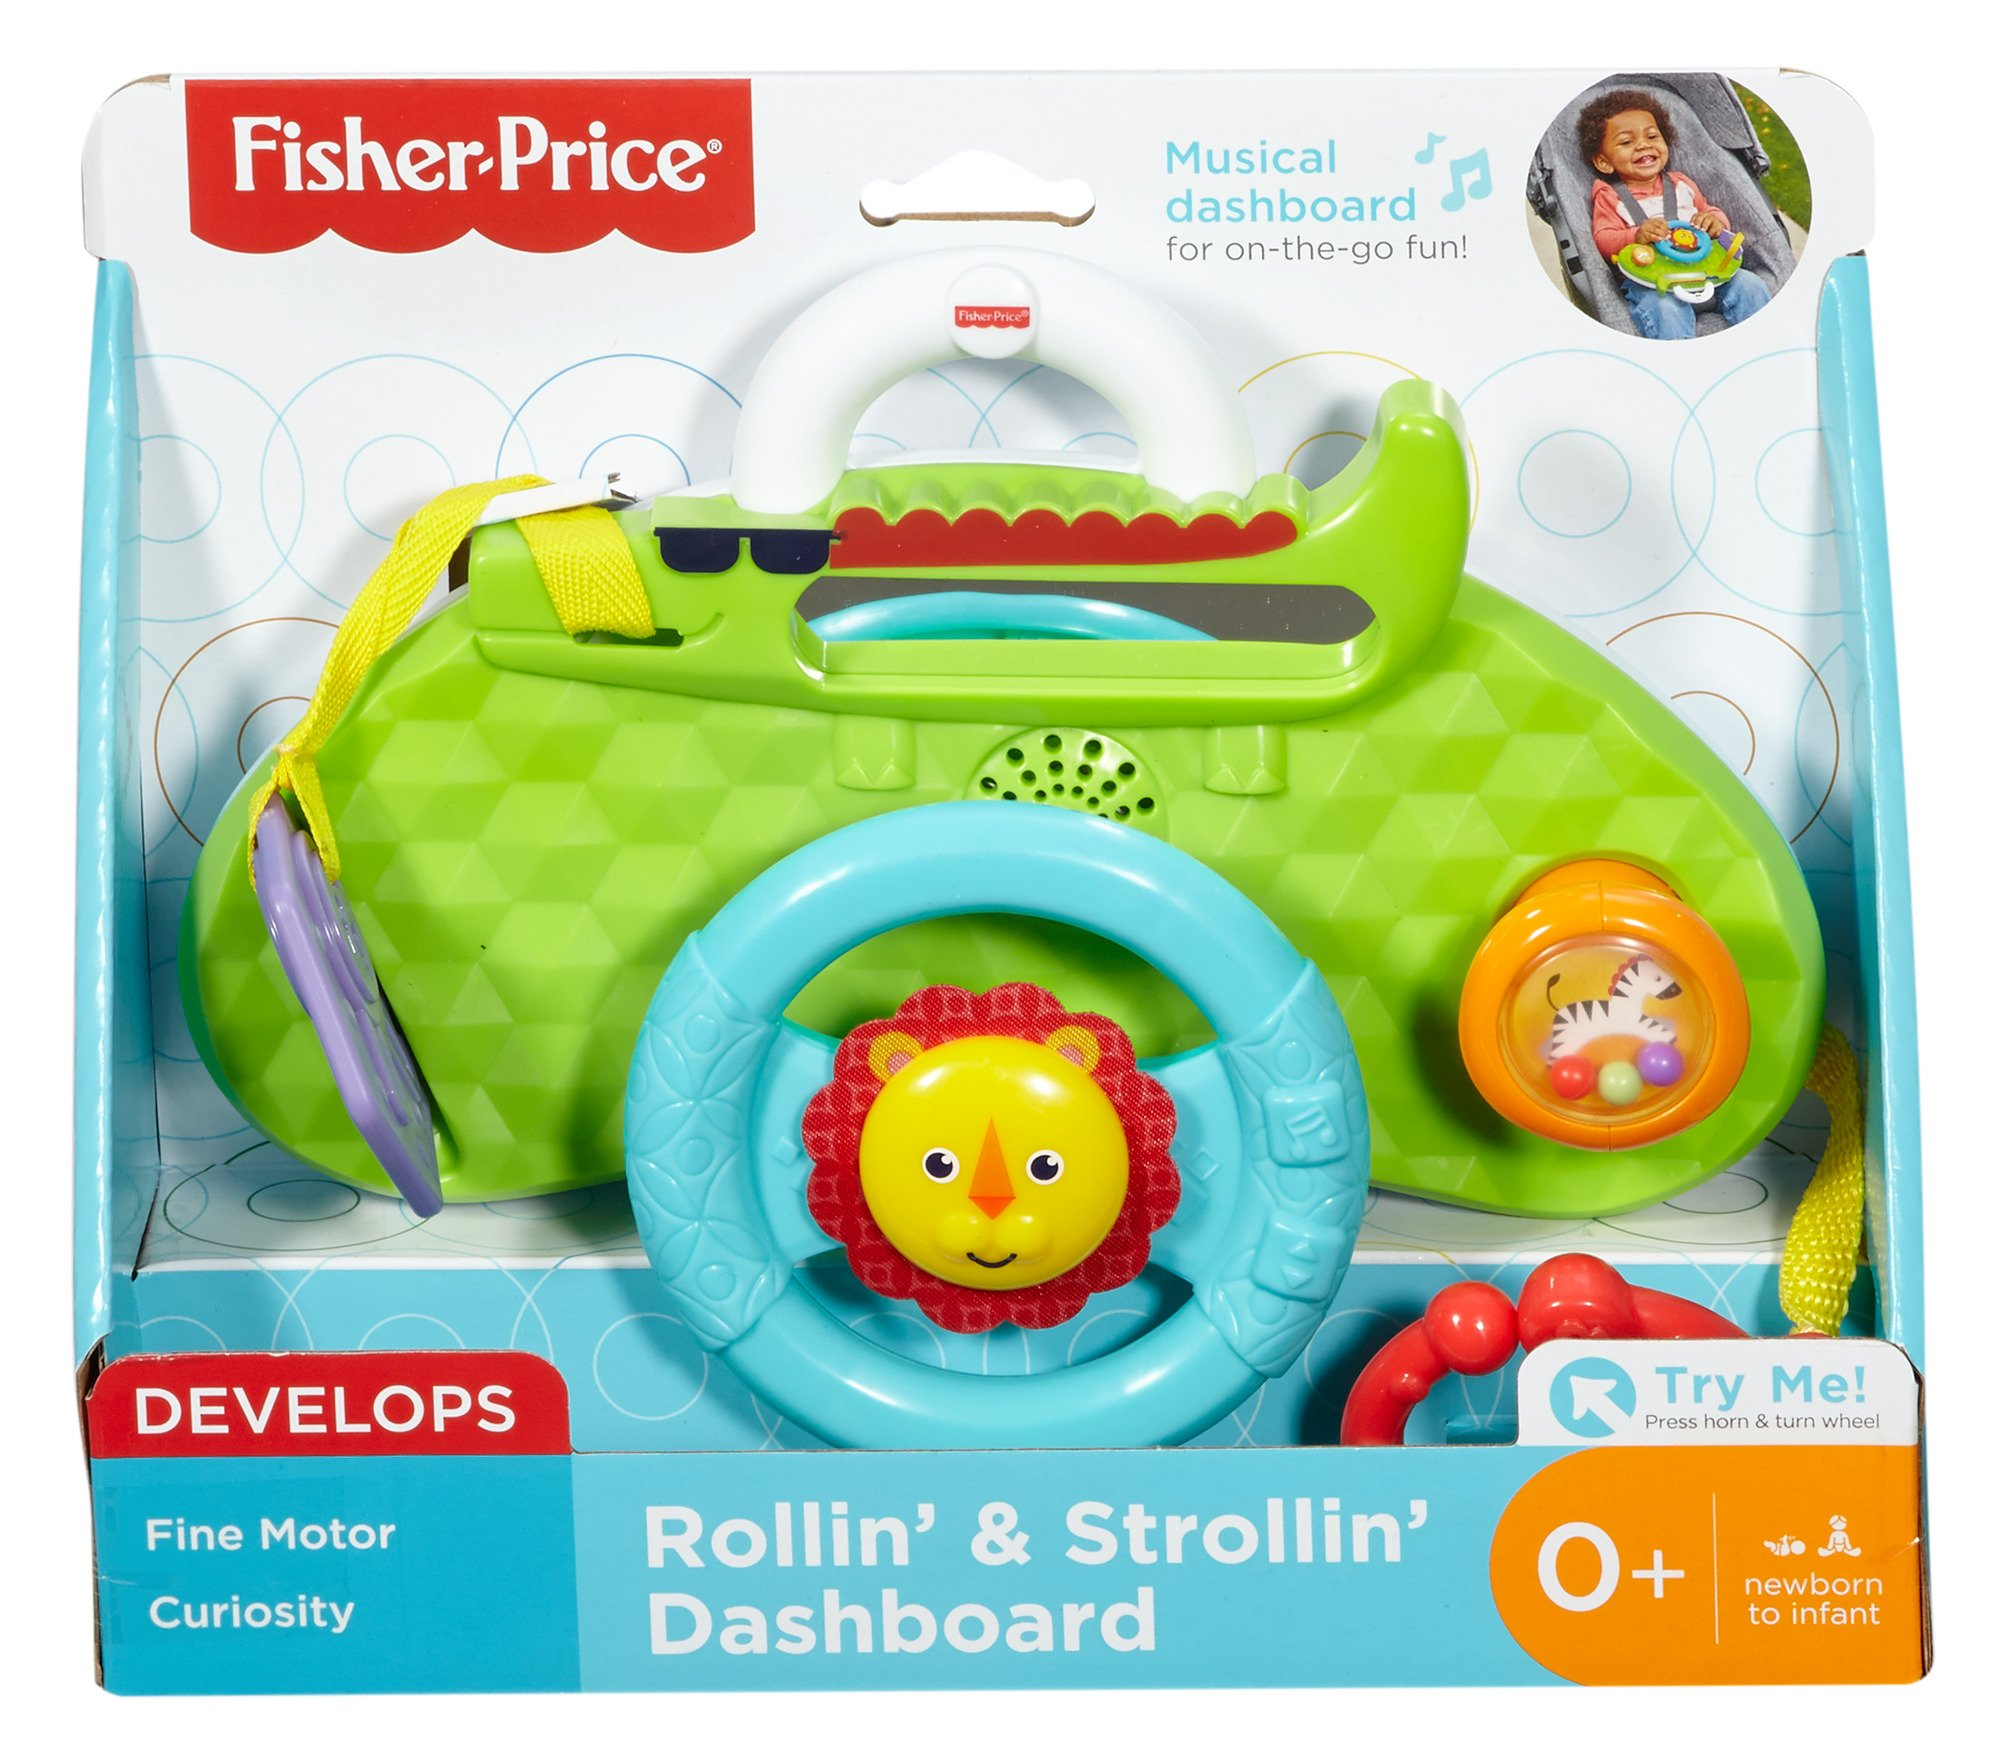 Fisher-Price Rolling and Strolling Dashboard, New-born Activity Toy with Music Sounds Fisher-Price  Attaches to stroller for playtime on the go  Turn the lion steering wheel to hear short songs  Push the lion's face for silly sound effects (Beep beep!) 6